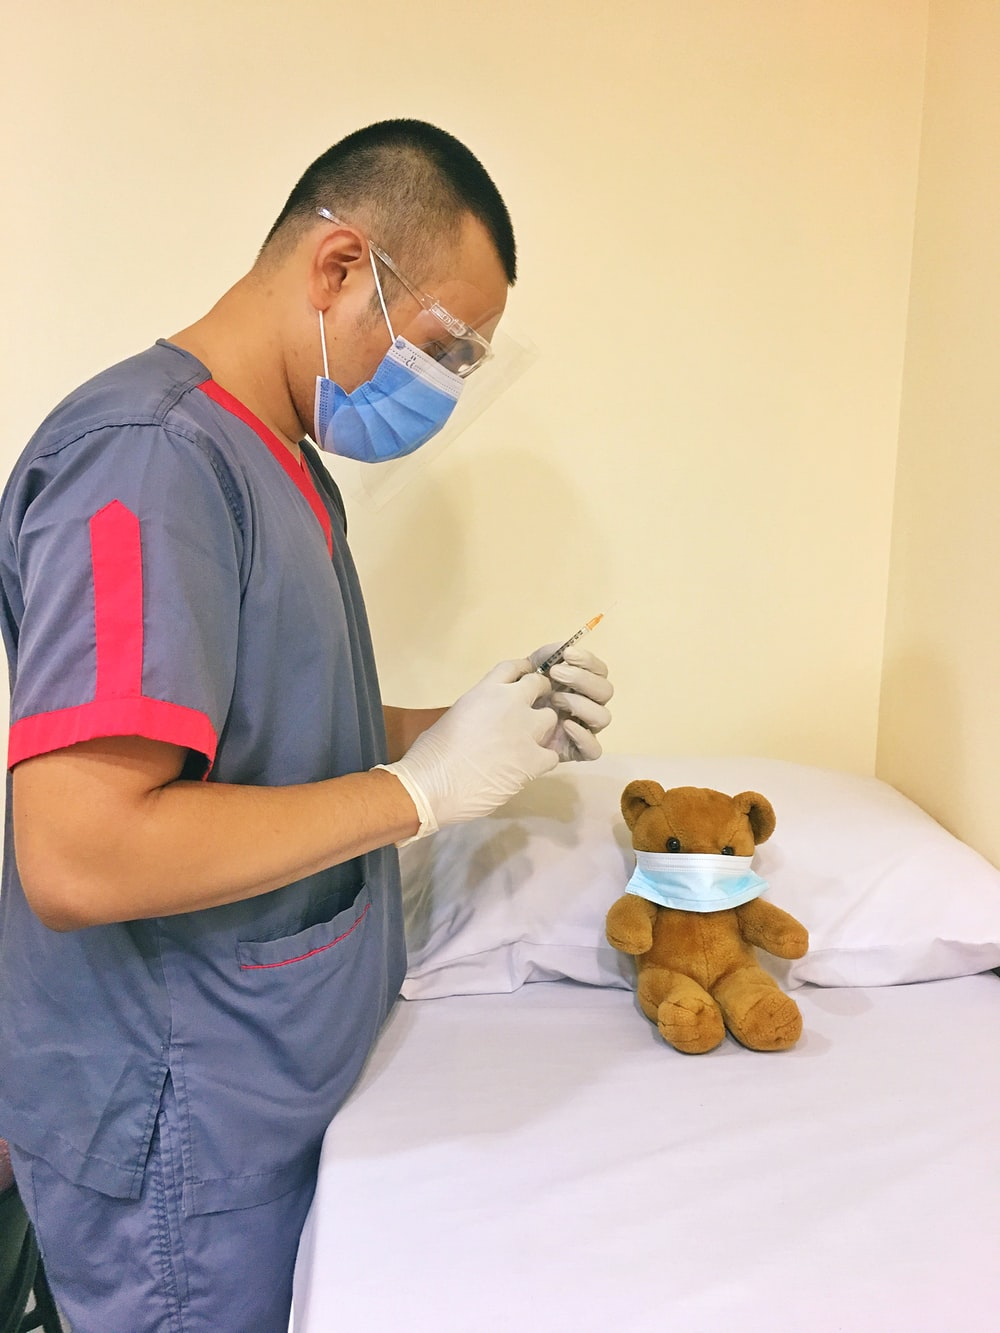 man in blue and red polo shirt holding a pen and a brown bear plush toy